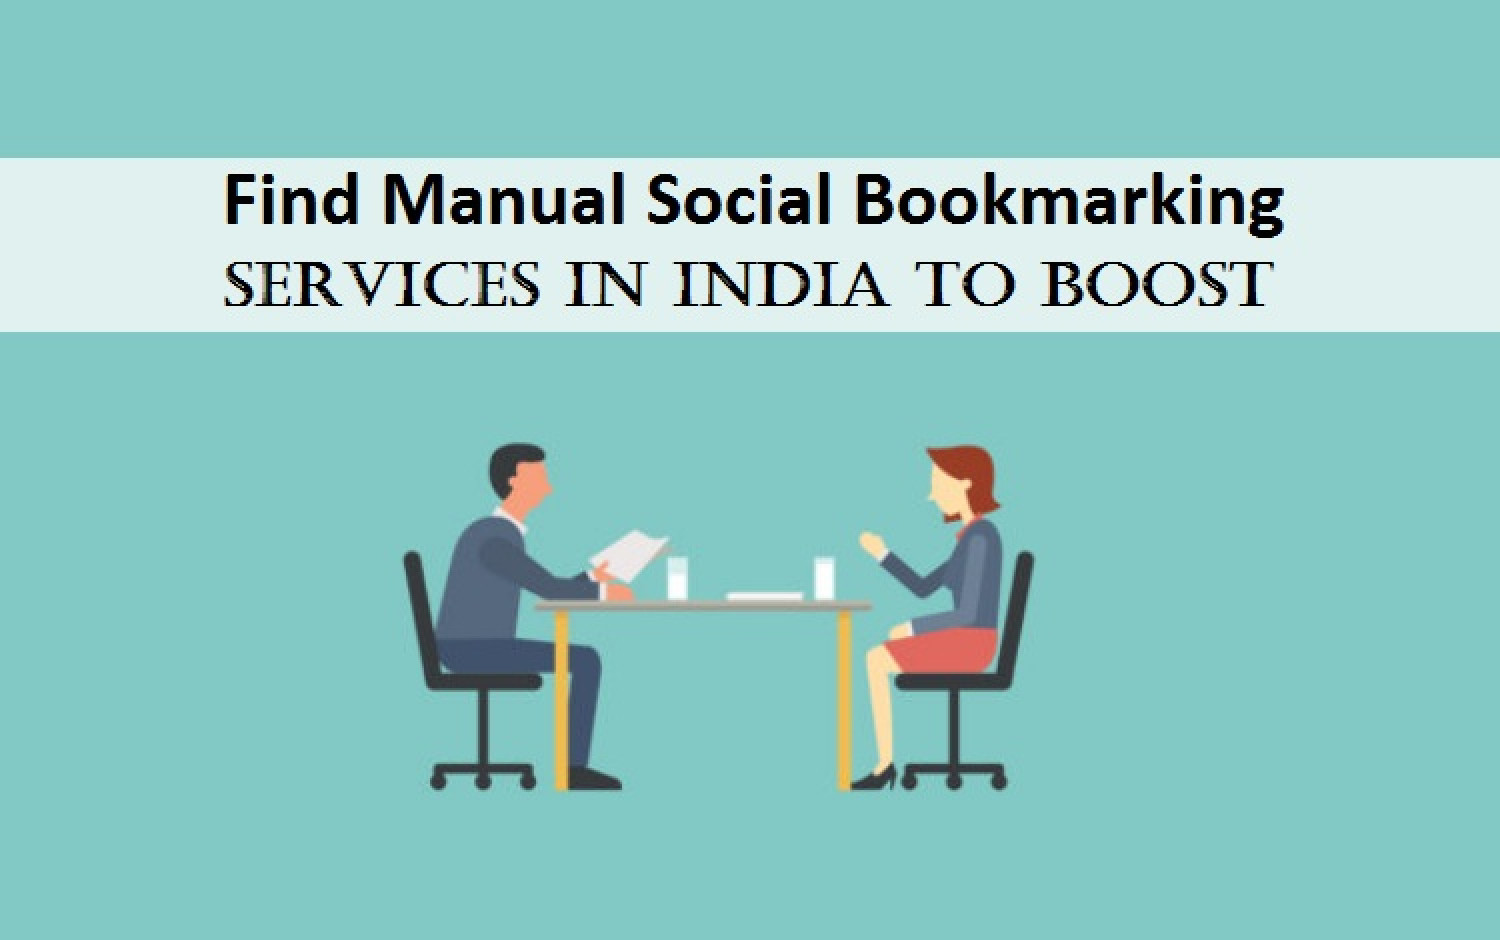 Find Manual Social Bookmarking Services in India to Boost Infographic